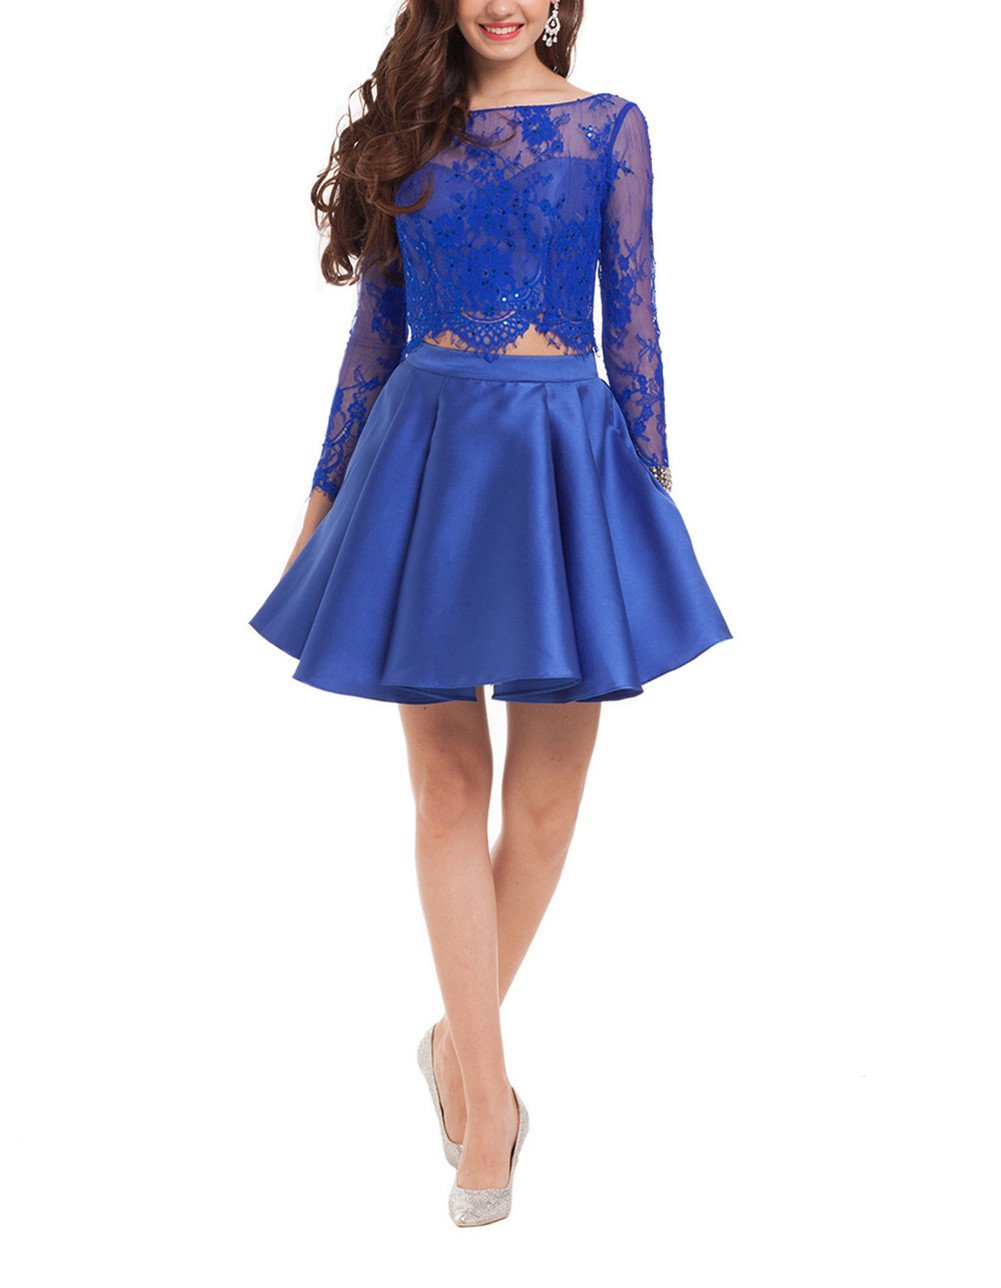 TDress Two Pieces Satin and Lace Short Prom Homecoming Dresses Blue Size 8